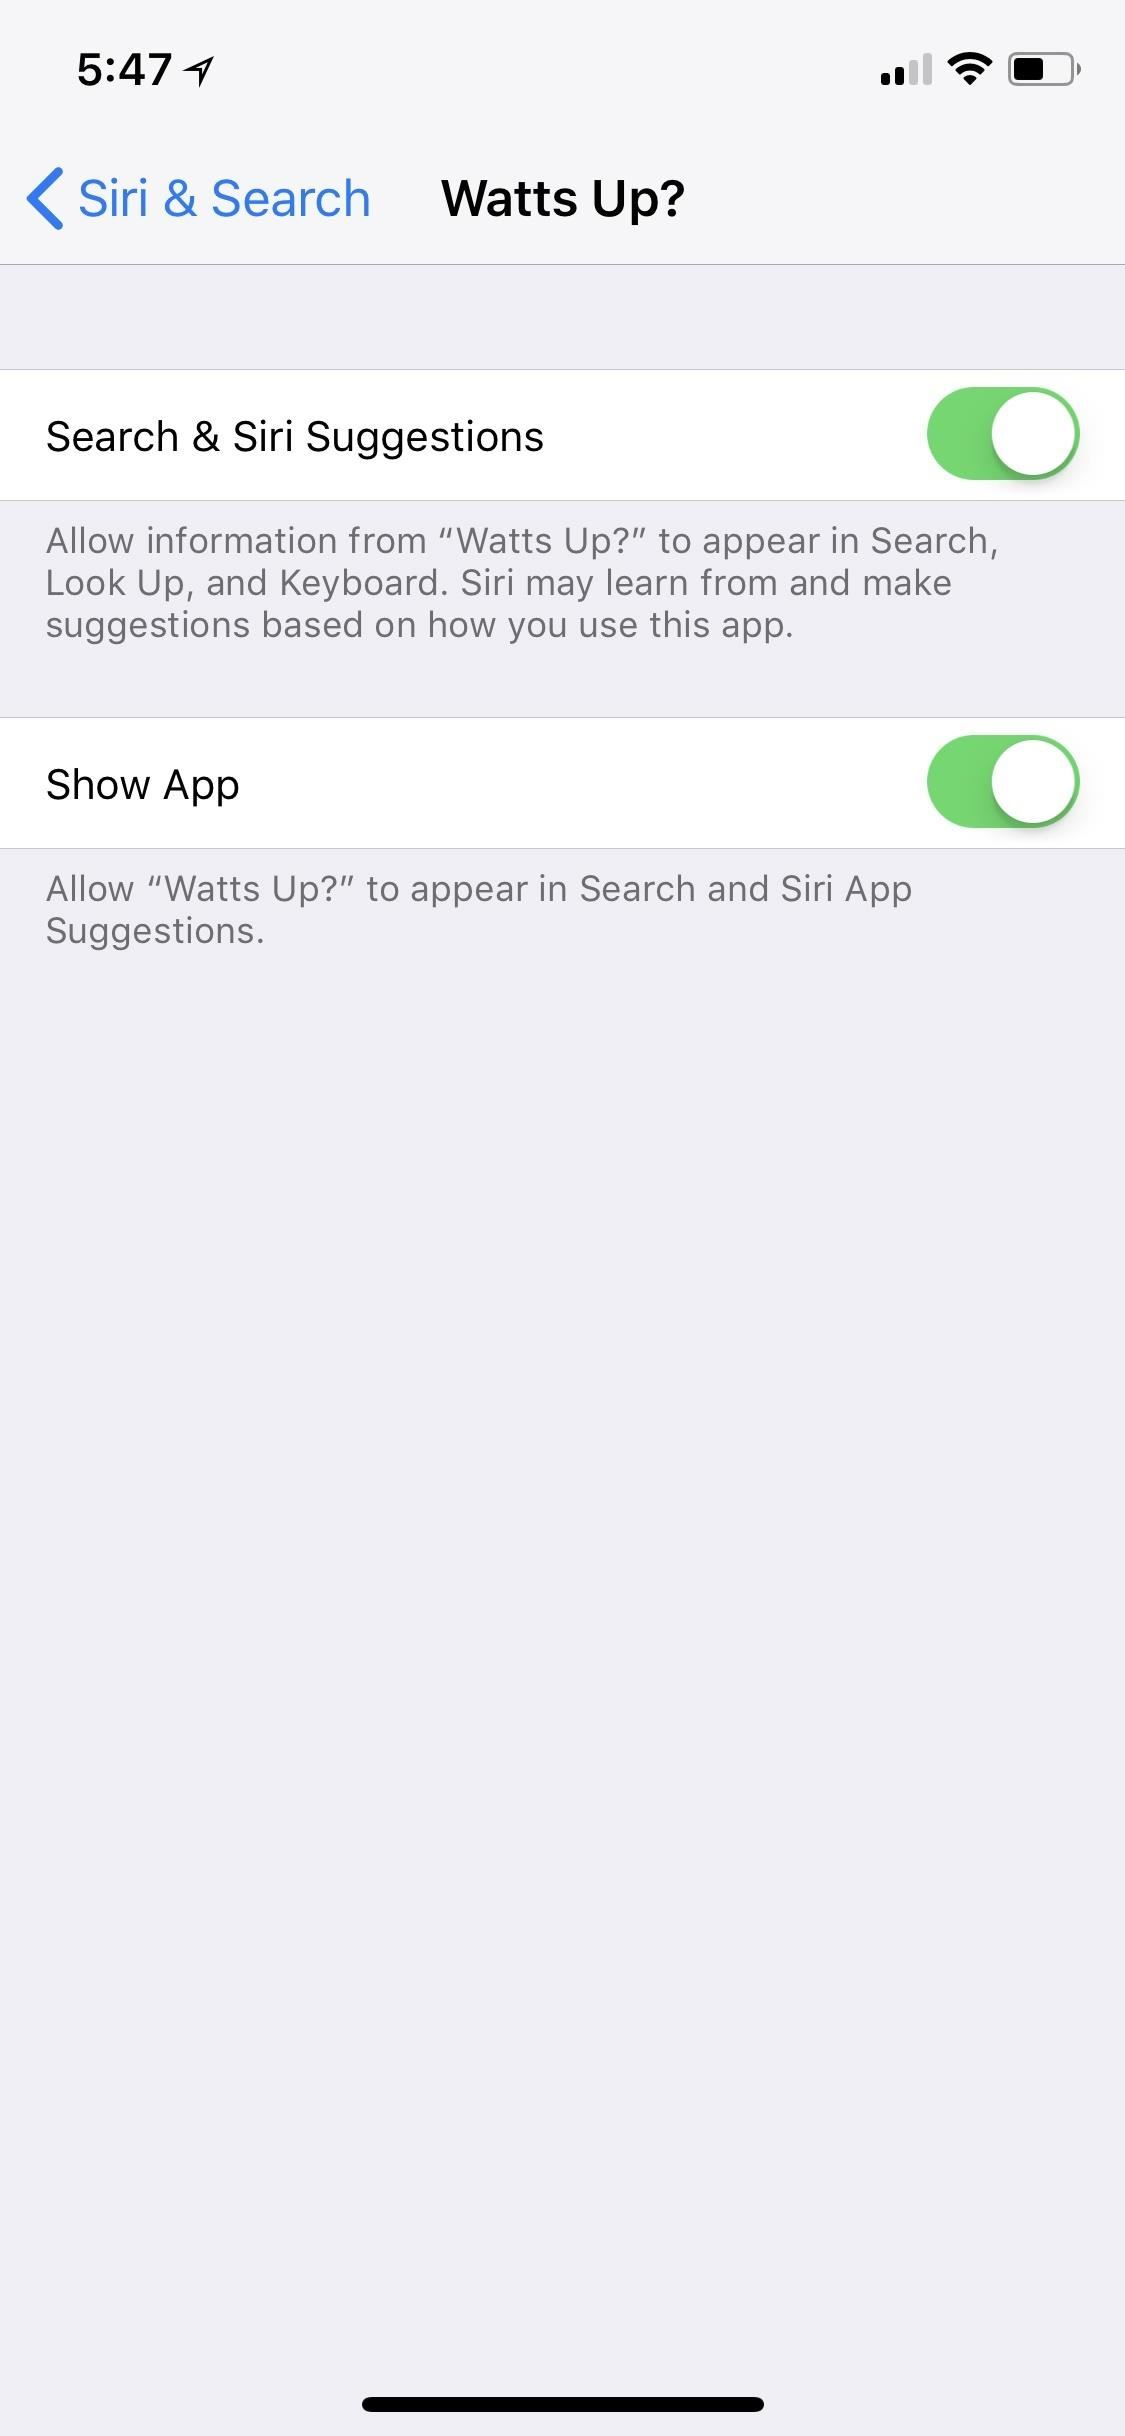 How to Find Missing Apps on Your iPhone